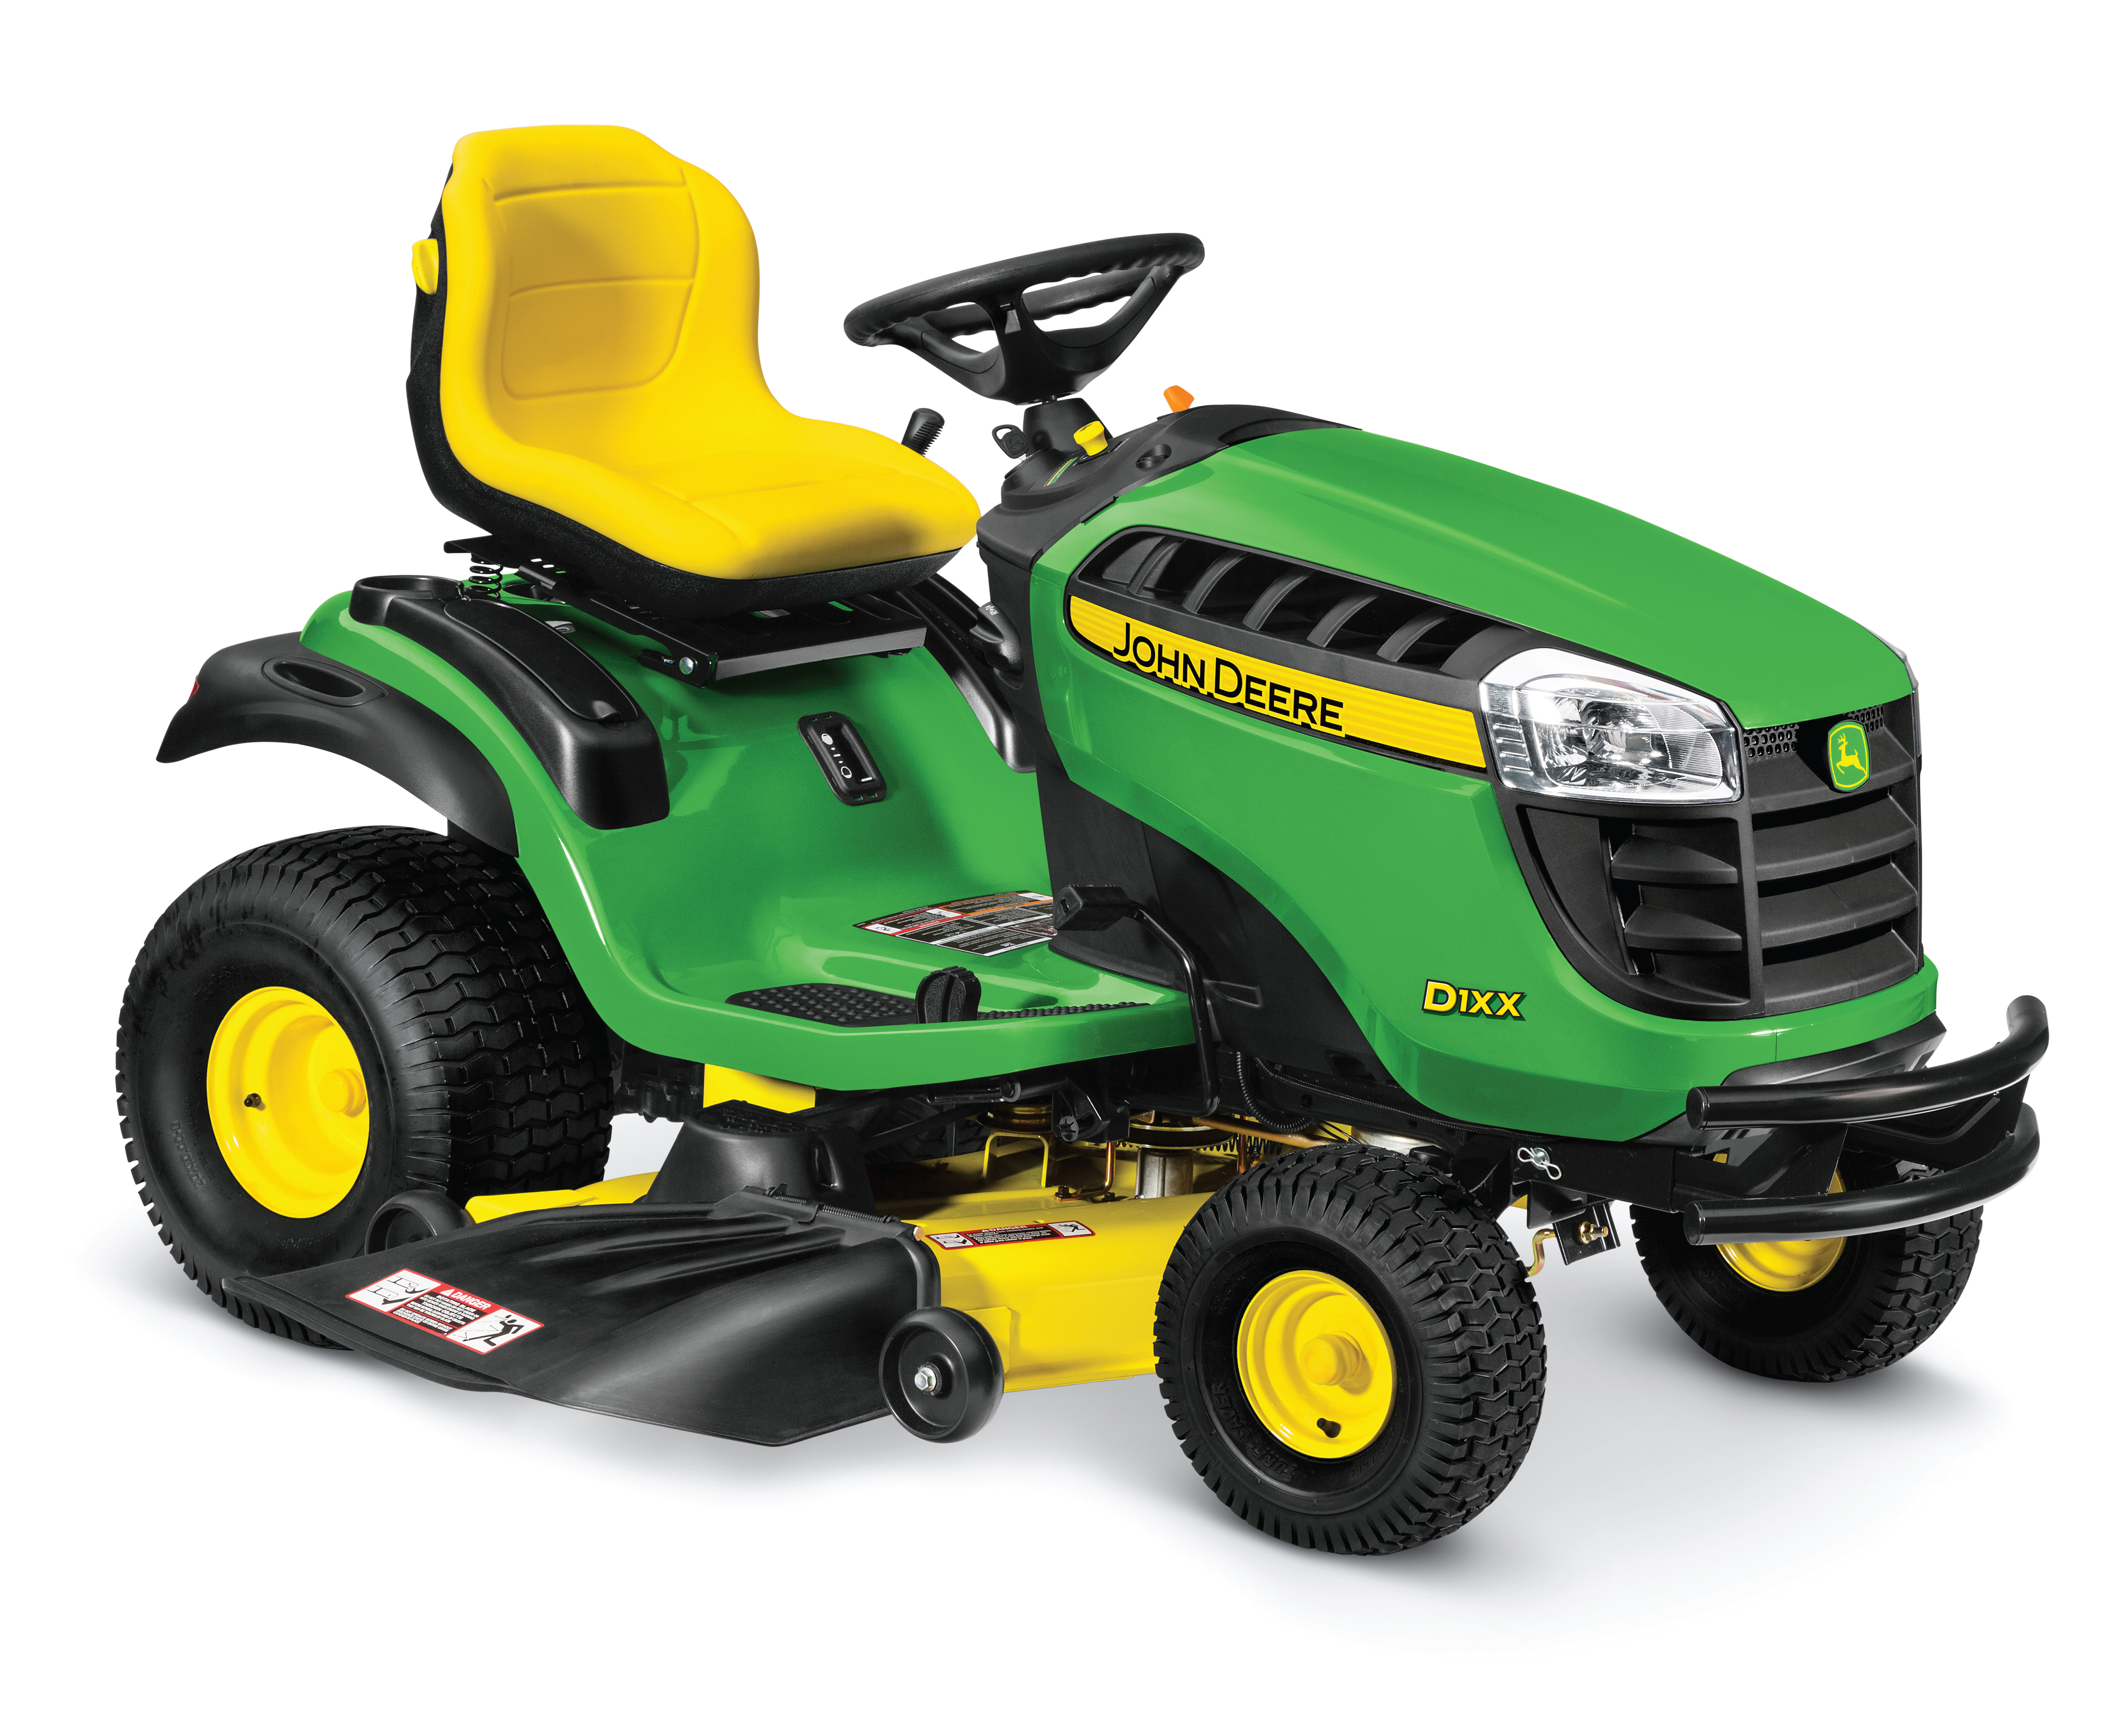 Wiring Diagram For Case 40xt together with 2004 2013 Polaris 400 450 500 Sportsman Carburated Atv Online Service Manual additionally Watch furthermore S 294 John Deere Z930m Parts furthermore 3y83a Wiring Diagram Craftsman Riding Lawn Mower Need One. on john deere 430 engine diagram